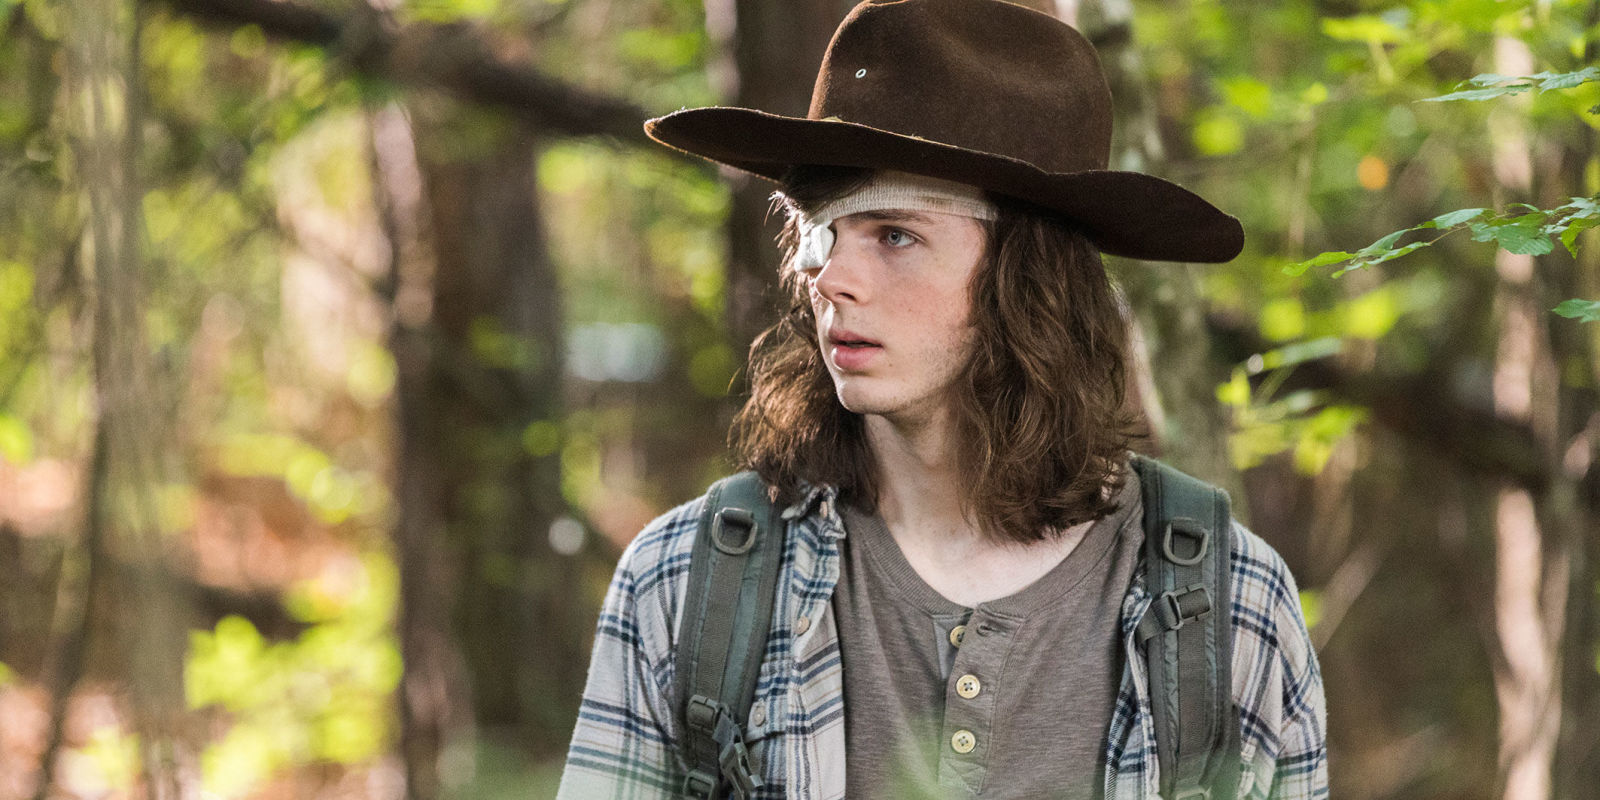 The Walking Dead: Walking Dead Stars Say Goodbye To Chandler Riggs